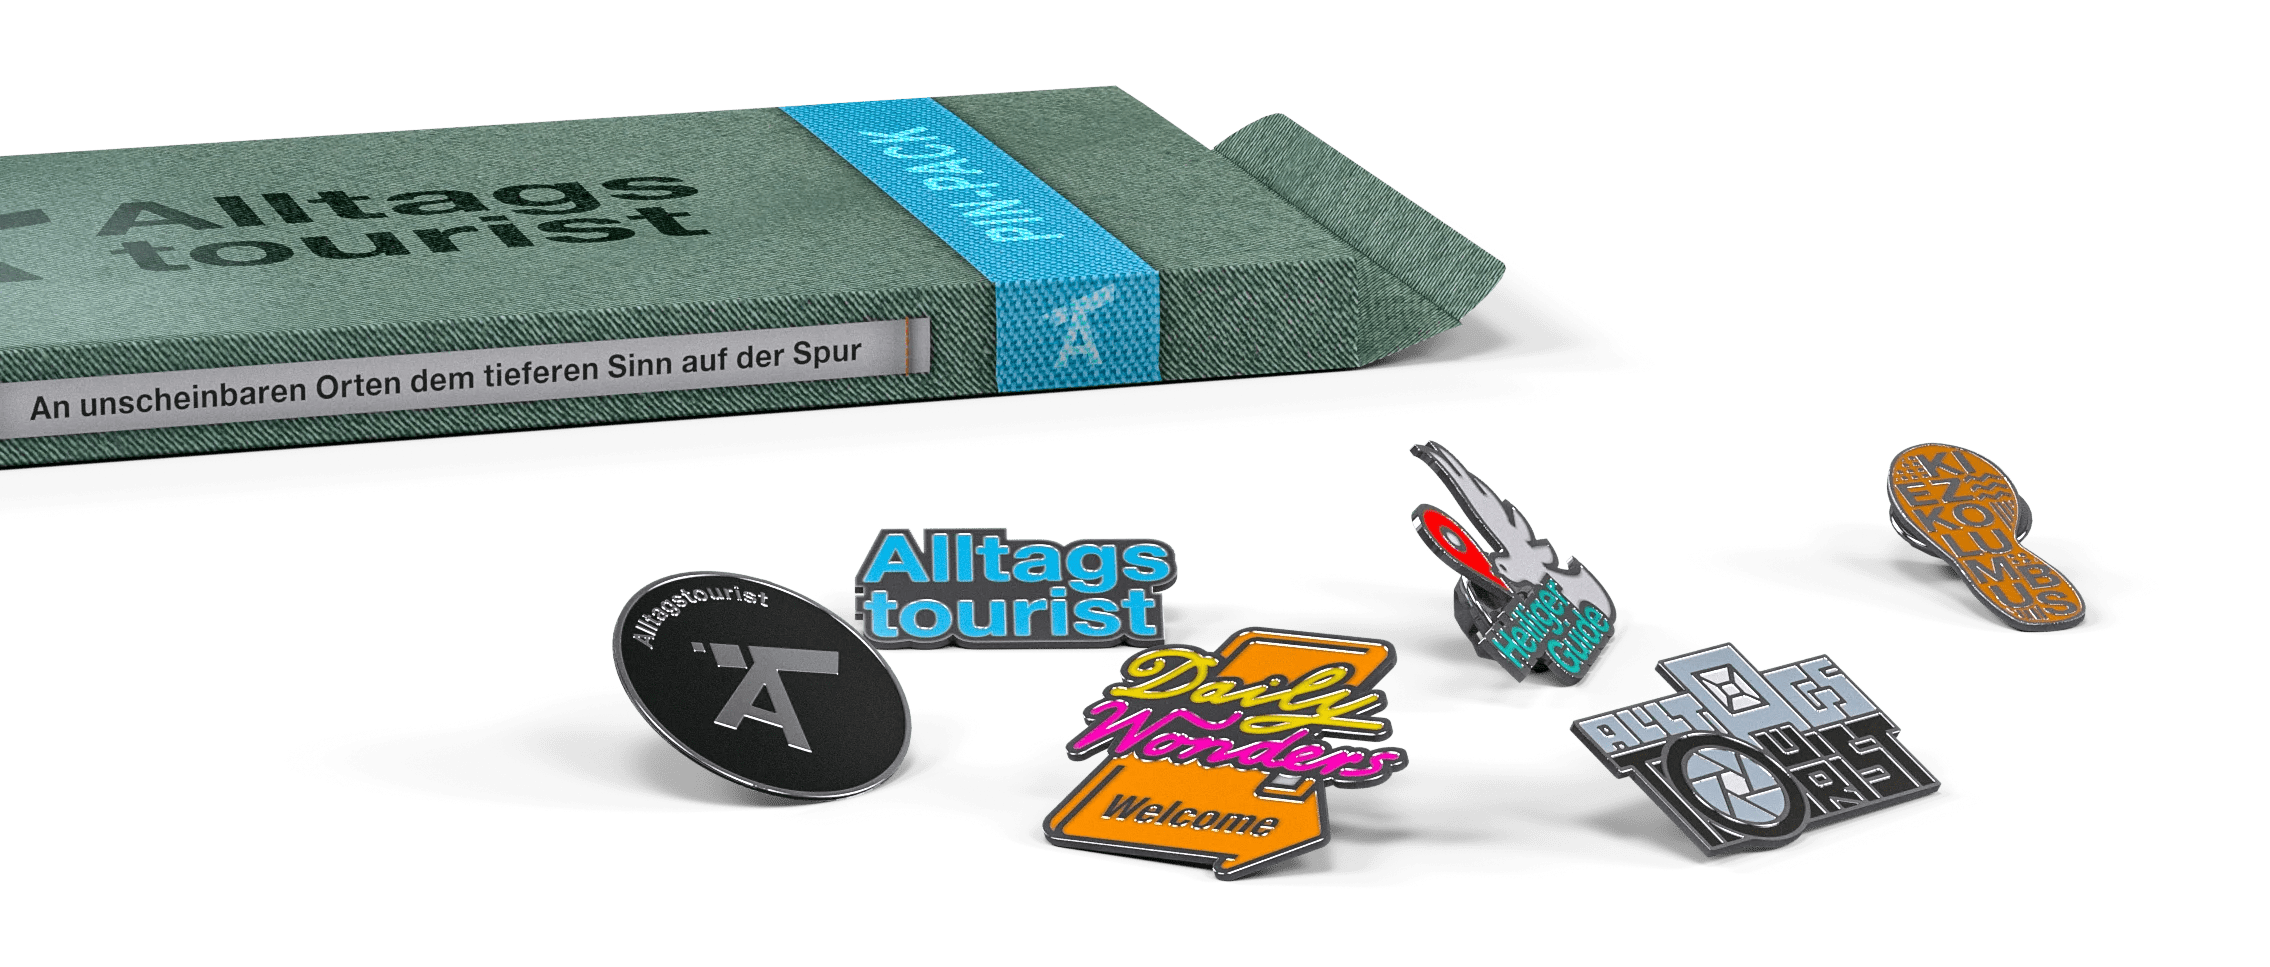 Alltagstourist, Pin, daily wonder, heiliger guide, kiezkolumbus